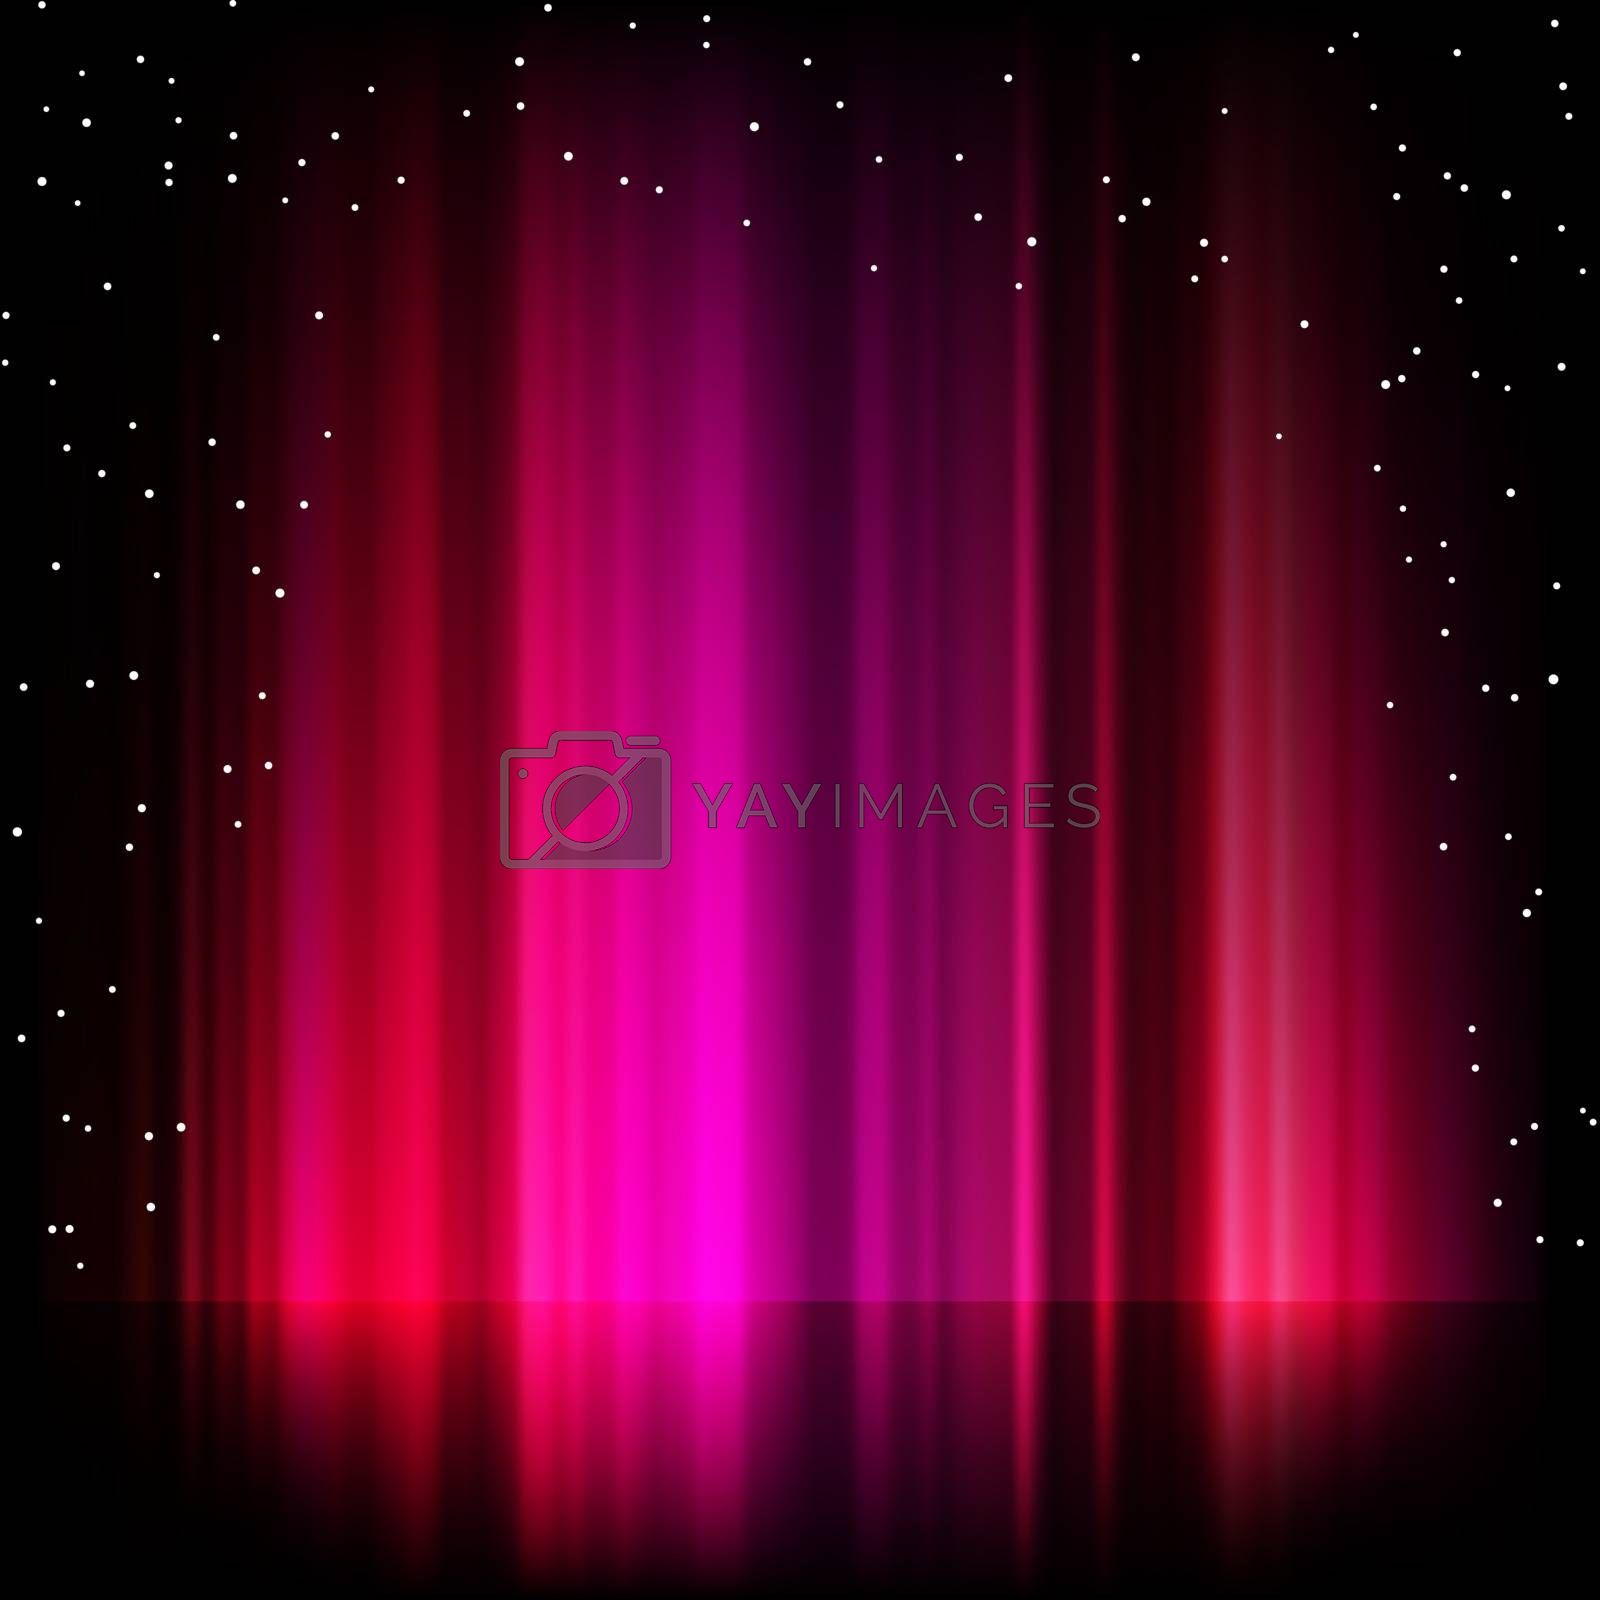 Purple aurora borealis background. EPS 8 vector file included